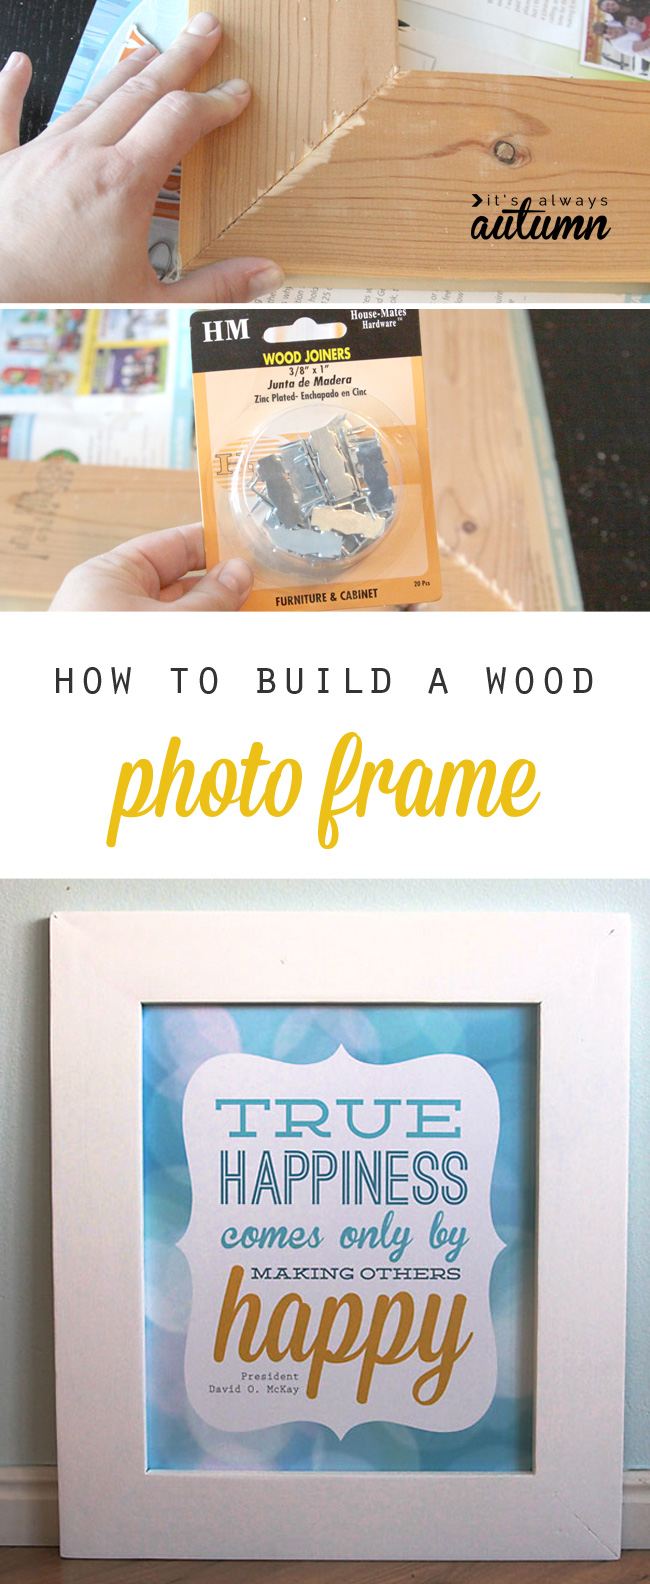 Learn how to build a large mitered photo frame for under 10 dollars in about half an hour. DIY wood photo frame tutorial.